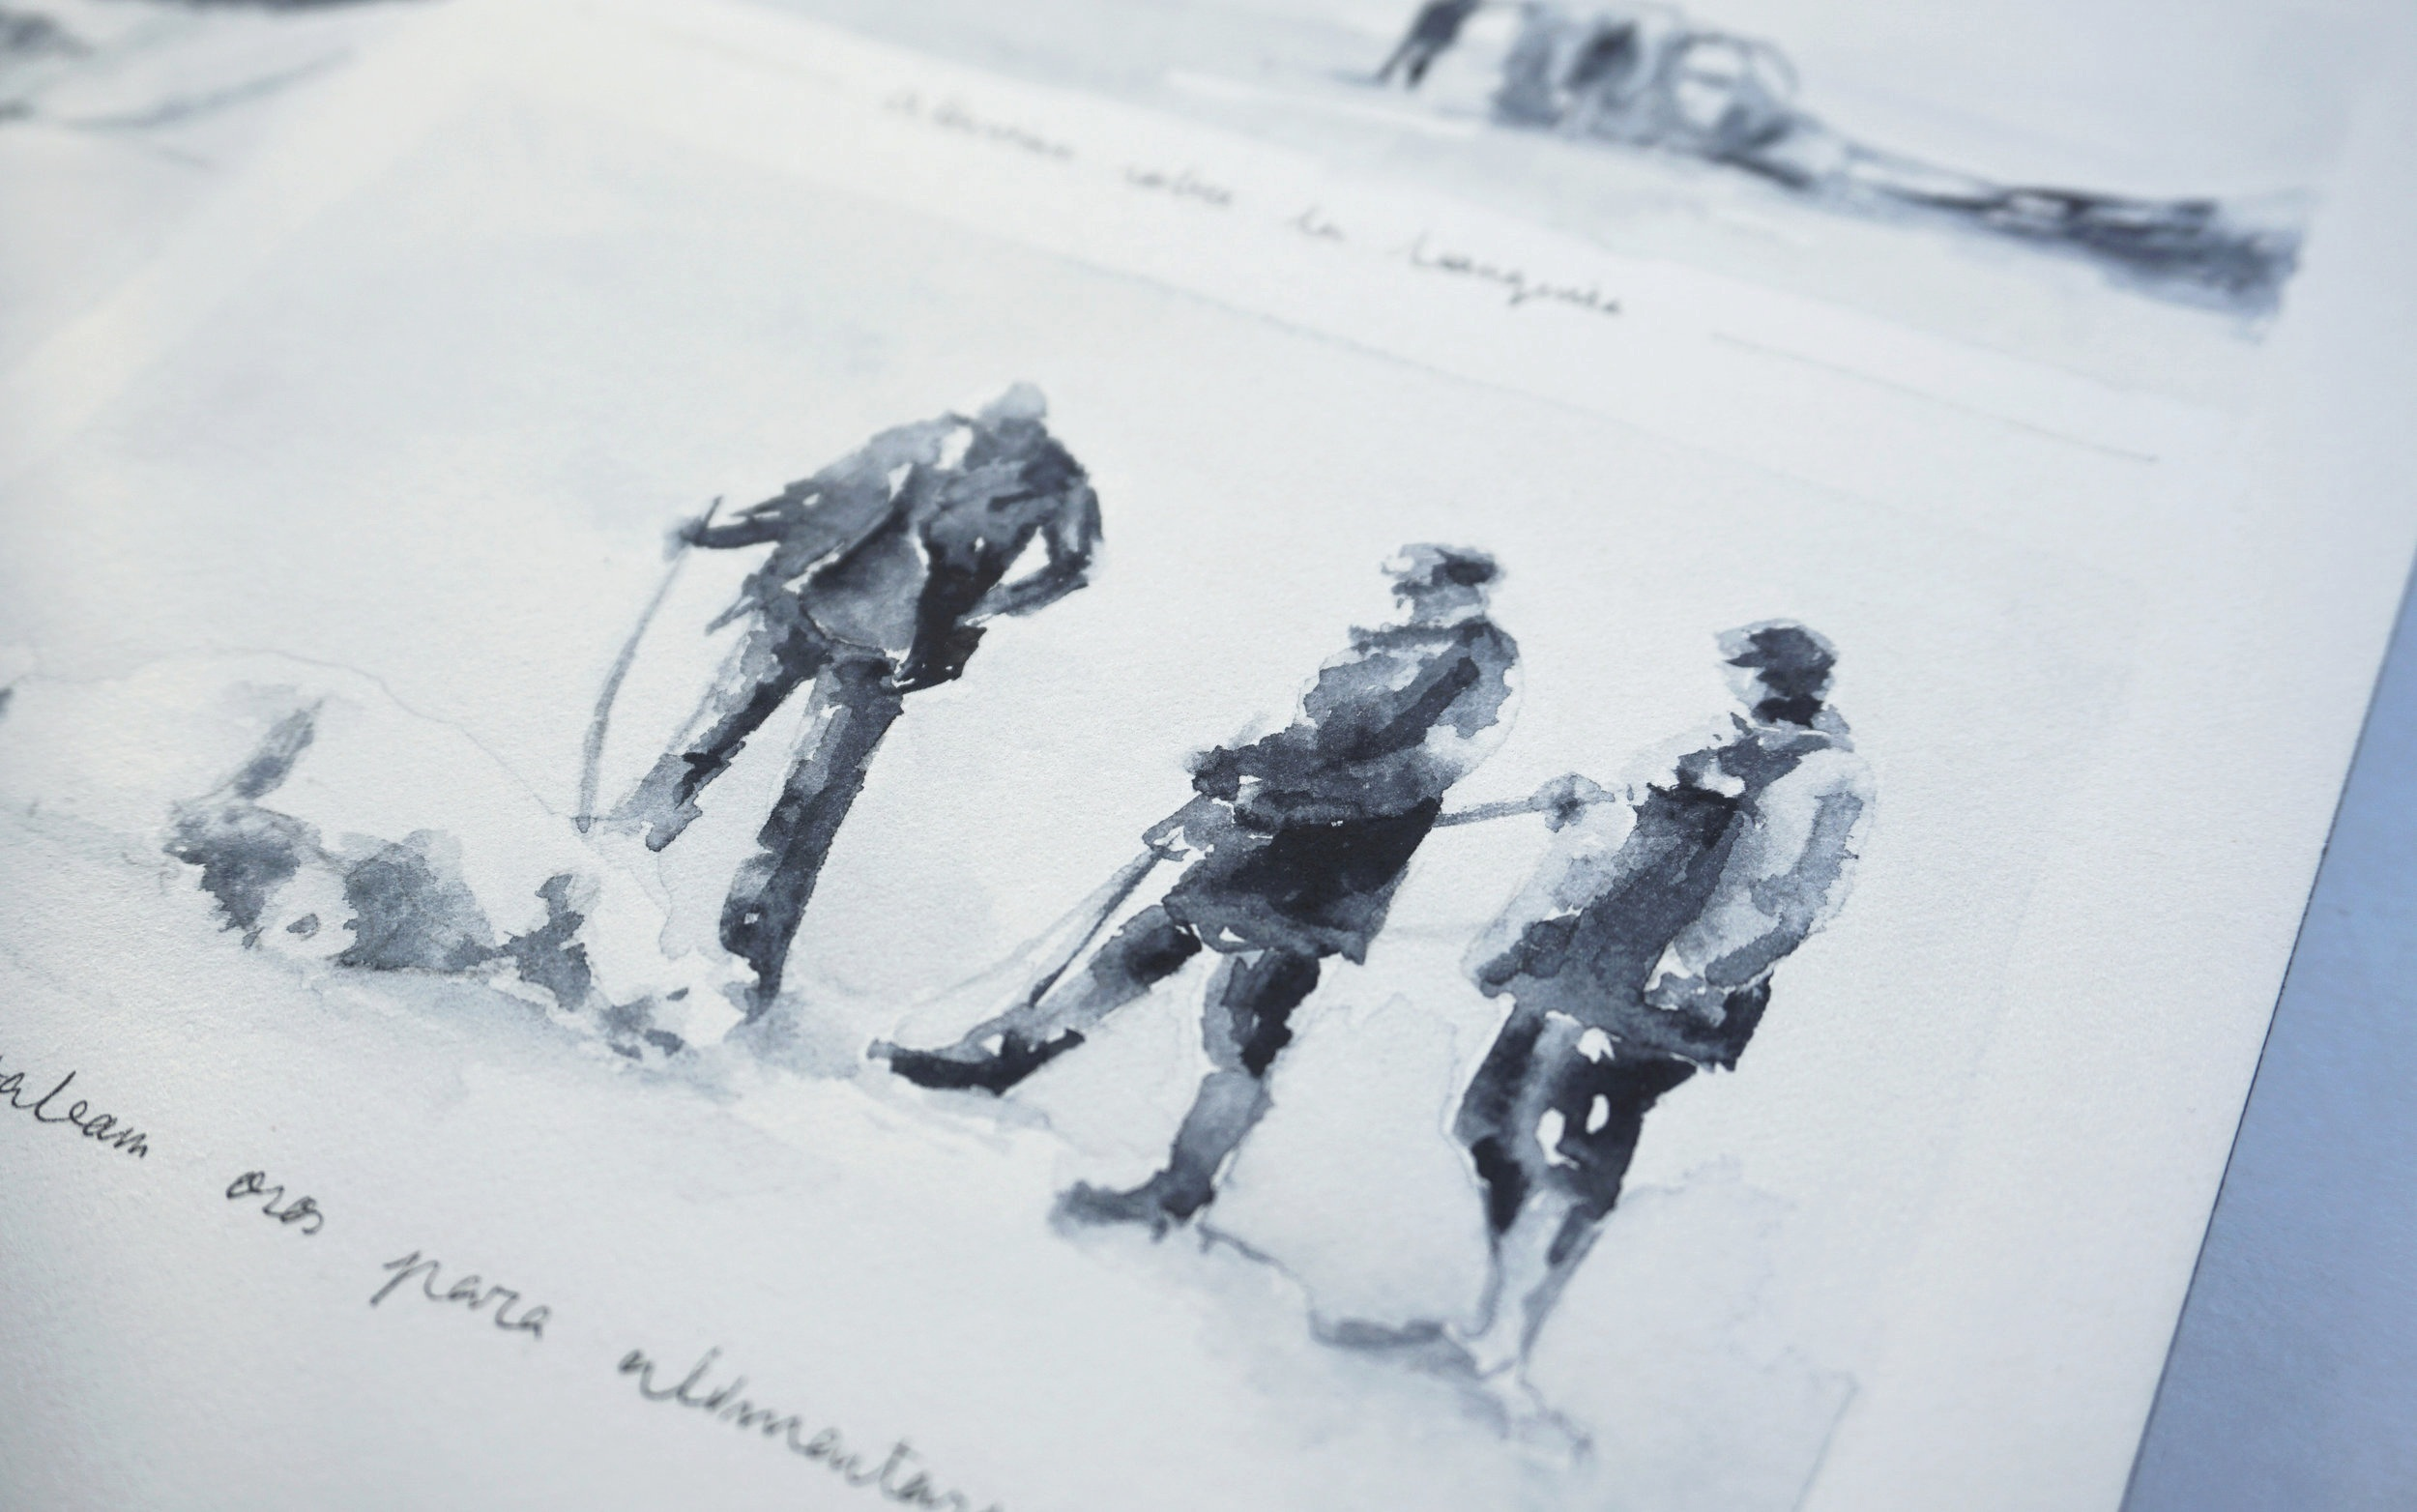 Watercolor illustrations of some scenes of the expedition.